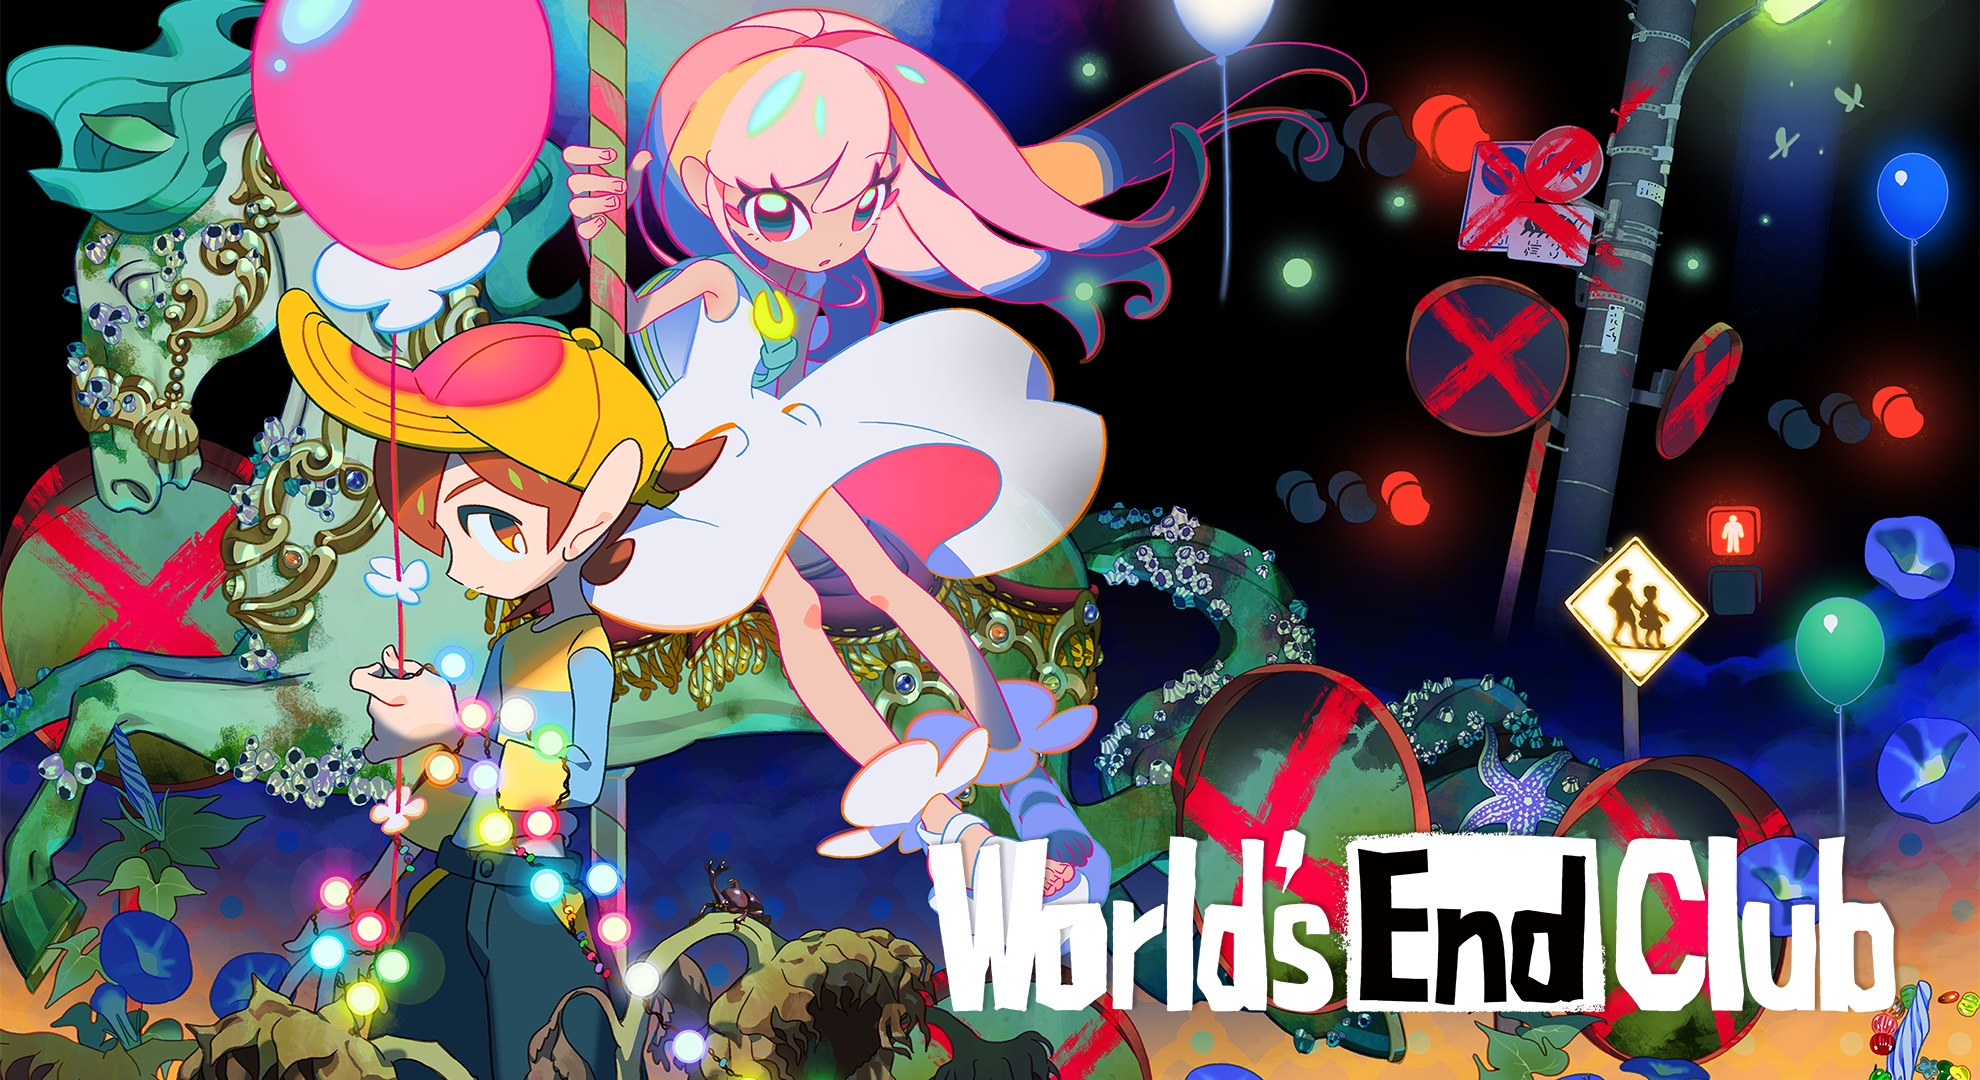 World's End Club Key Art